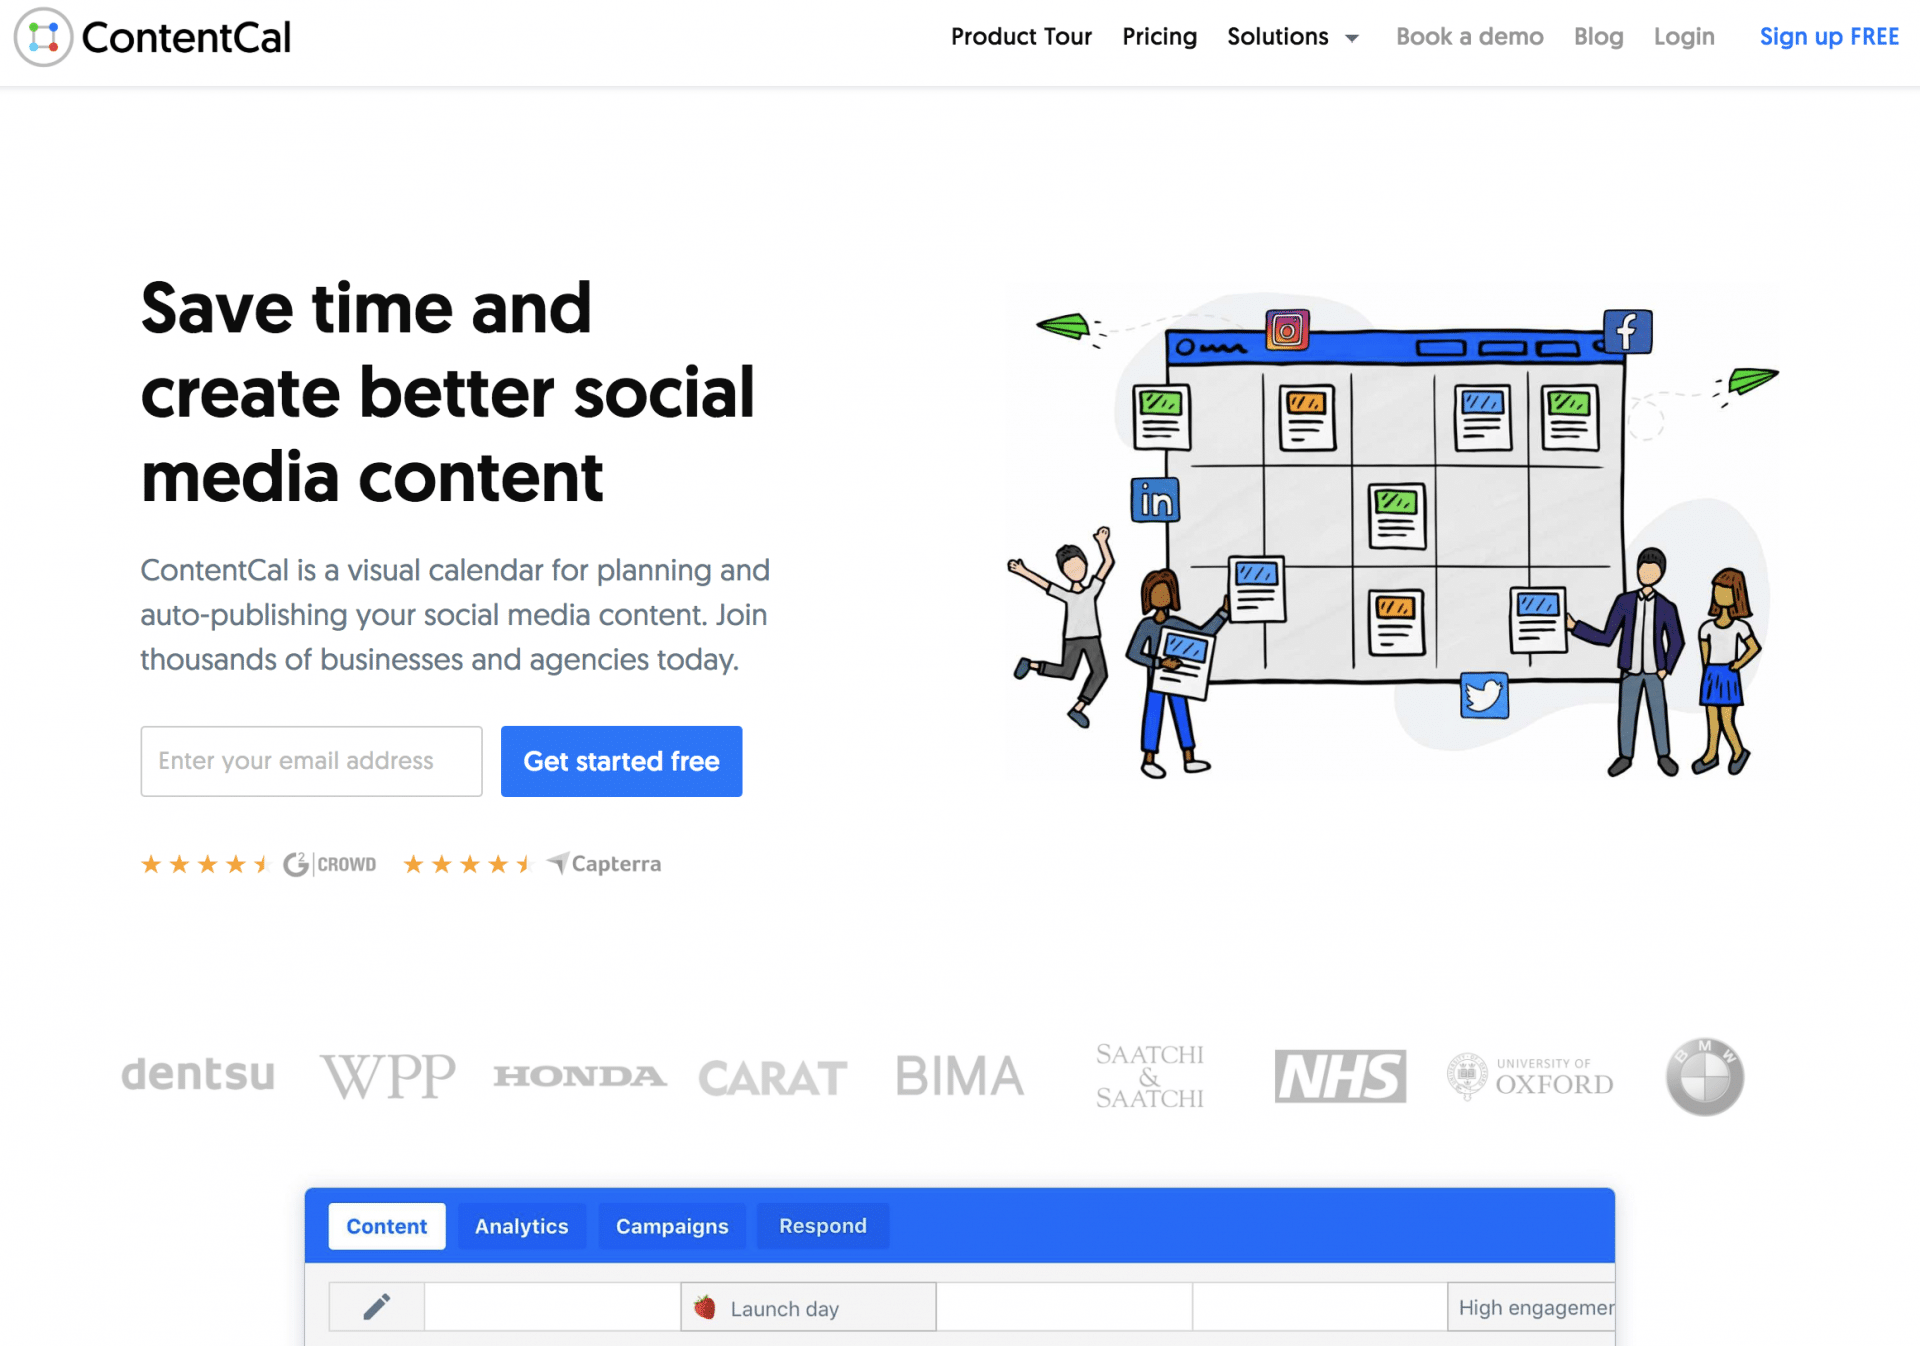 The ContentCal Home Page